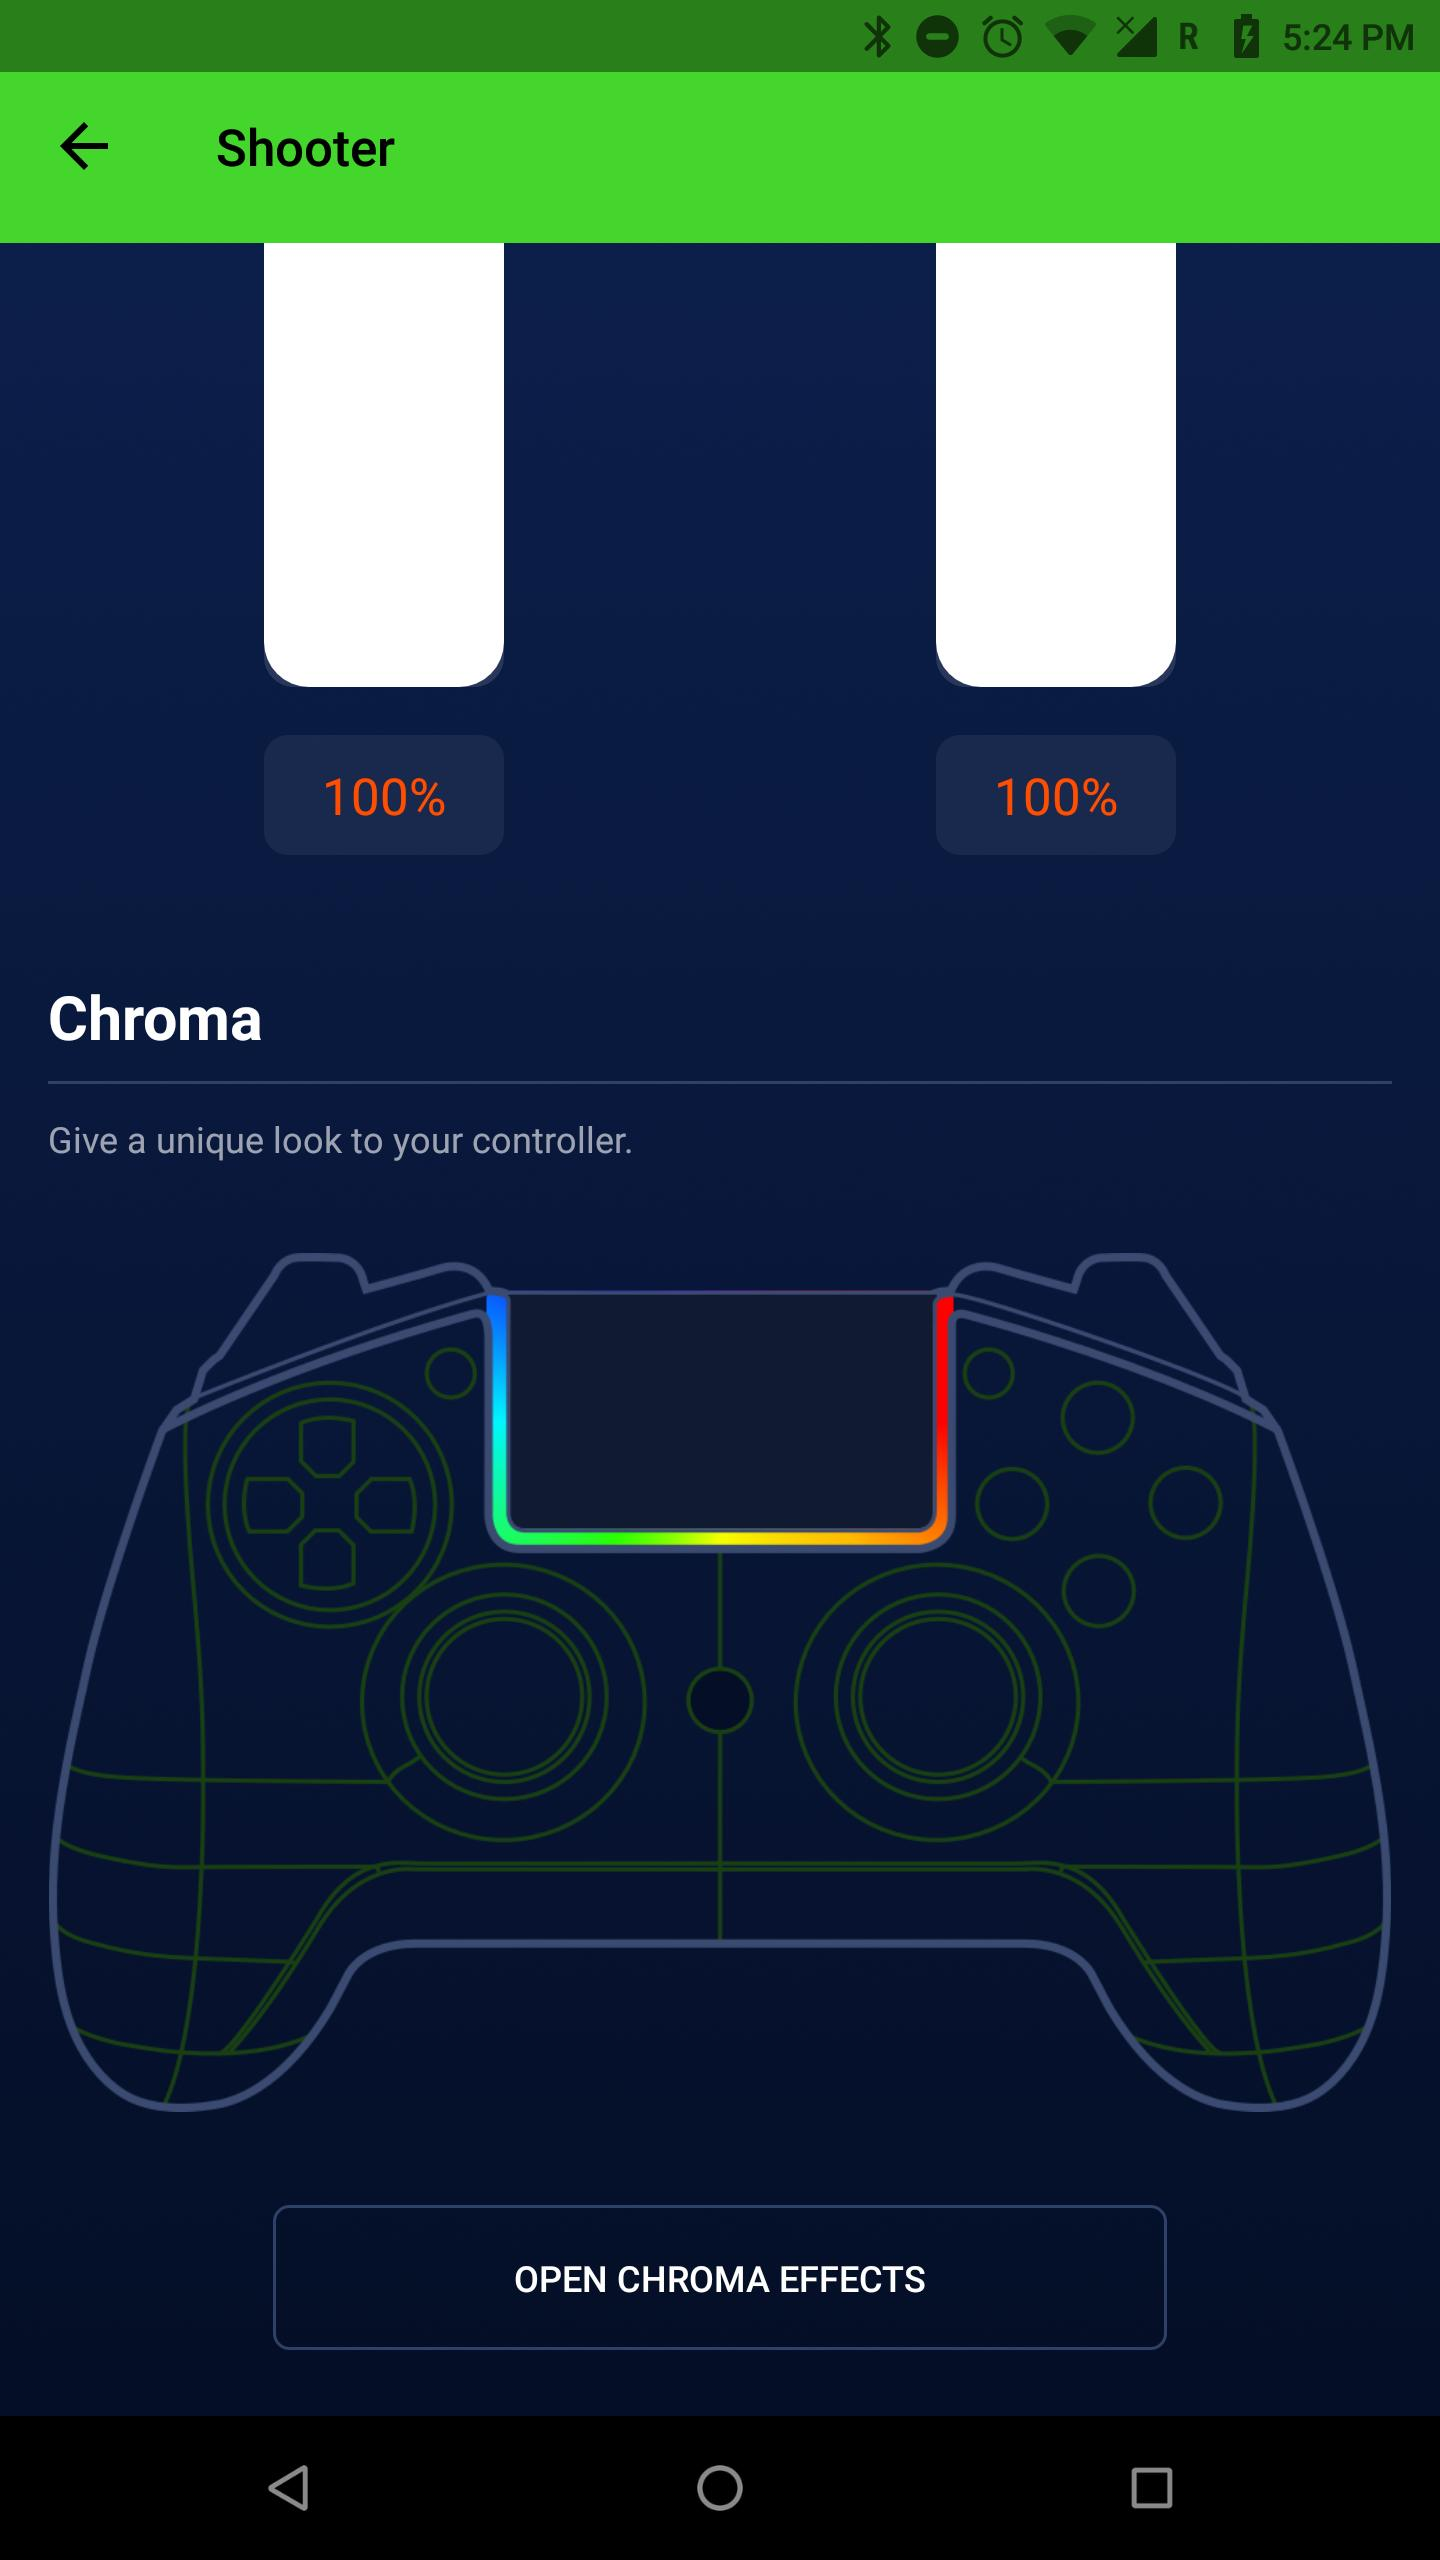 Razer Raiju For Ps4 For Android Apk Download The raiju are a race of weasel beastmen that live in the zipangu region. razer raiju for ps4 for android apk